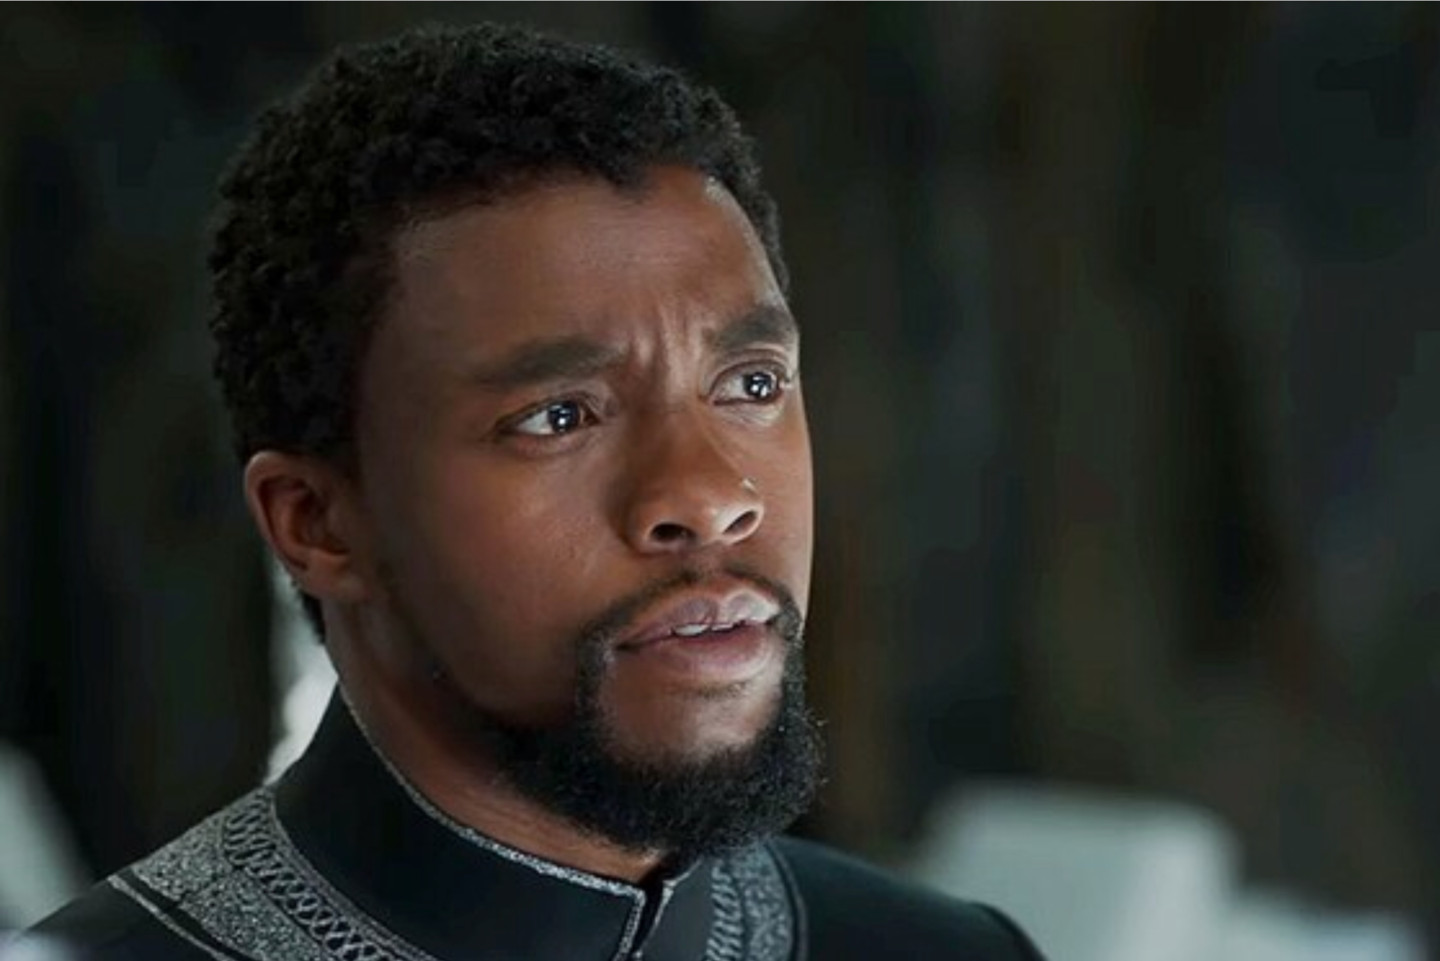 Black Panther…I'm really going to enjoy this movie tomorrow